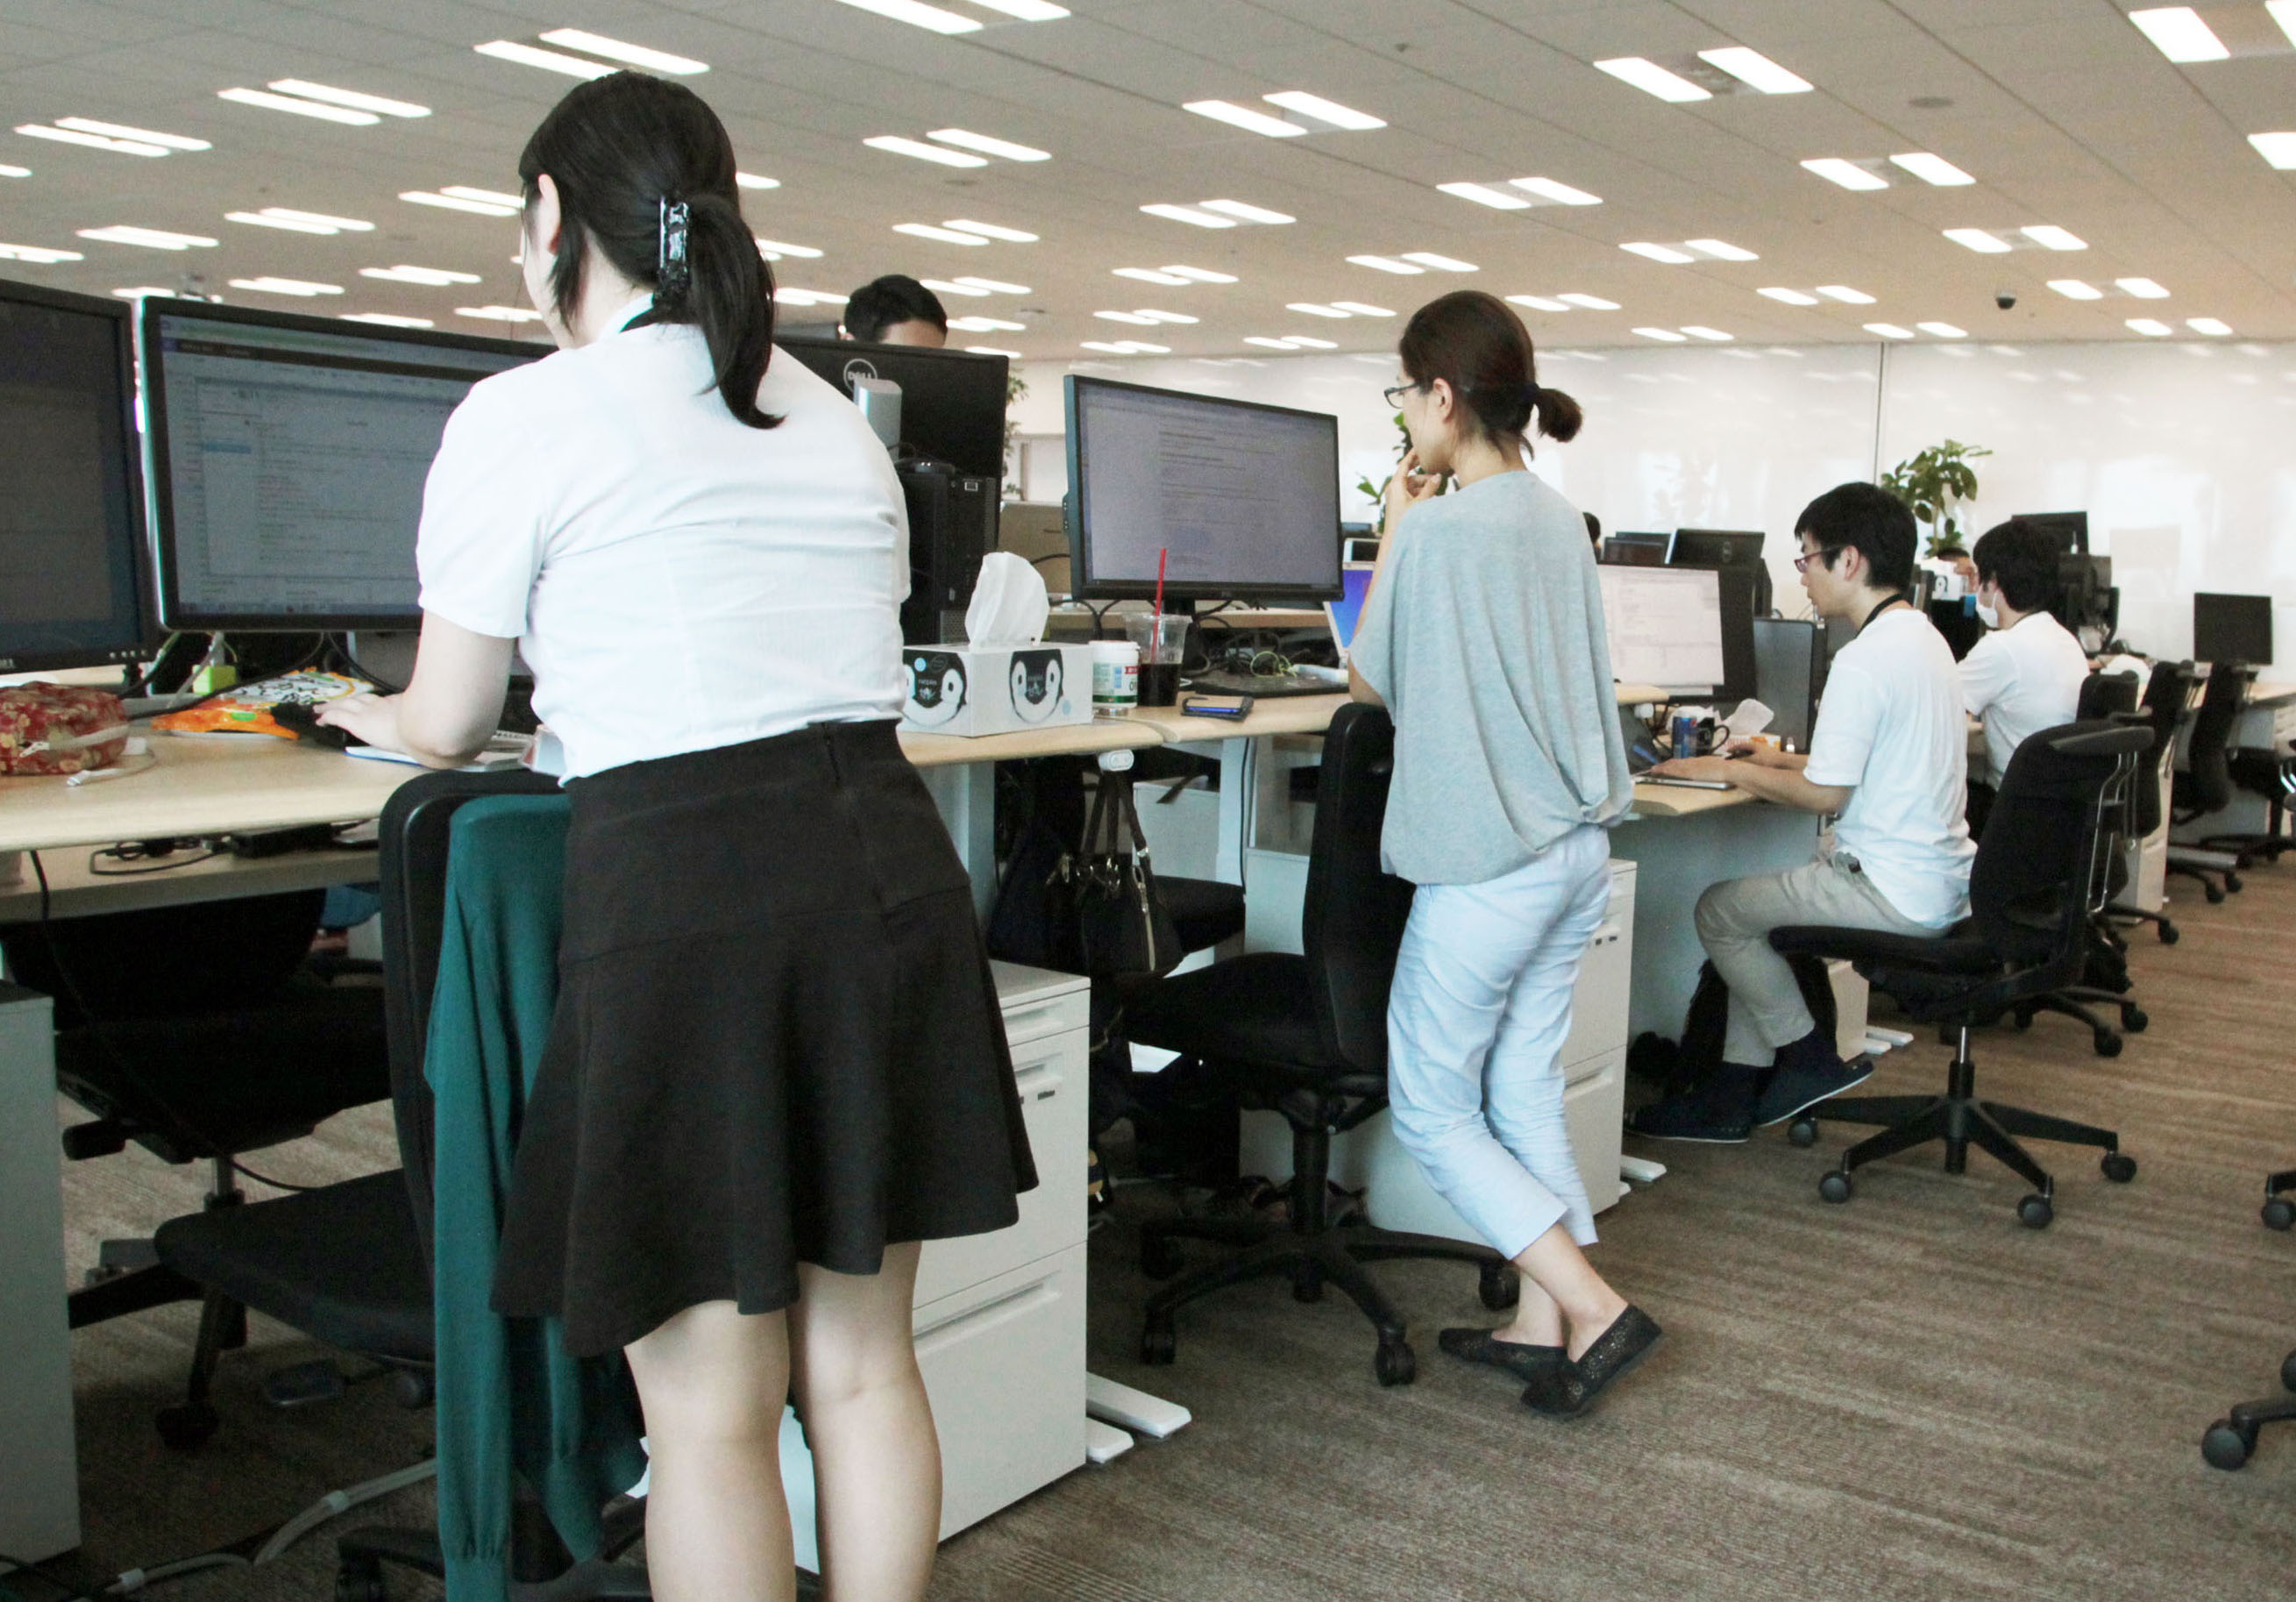 Workers stretch their legs at Rakuten Inc.'s head office in Tokyo's Setagaya Ward. | KYODO